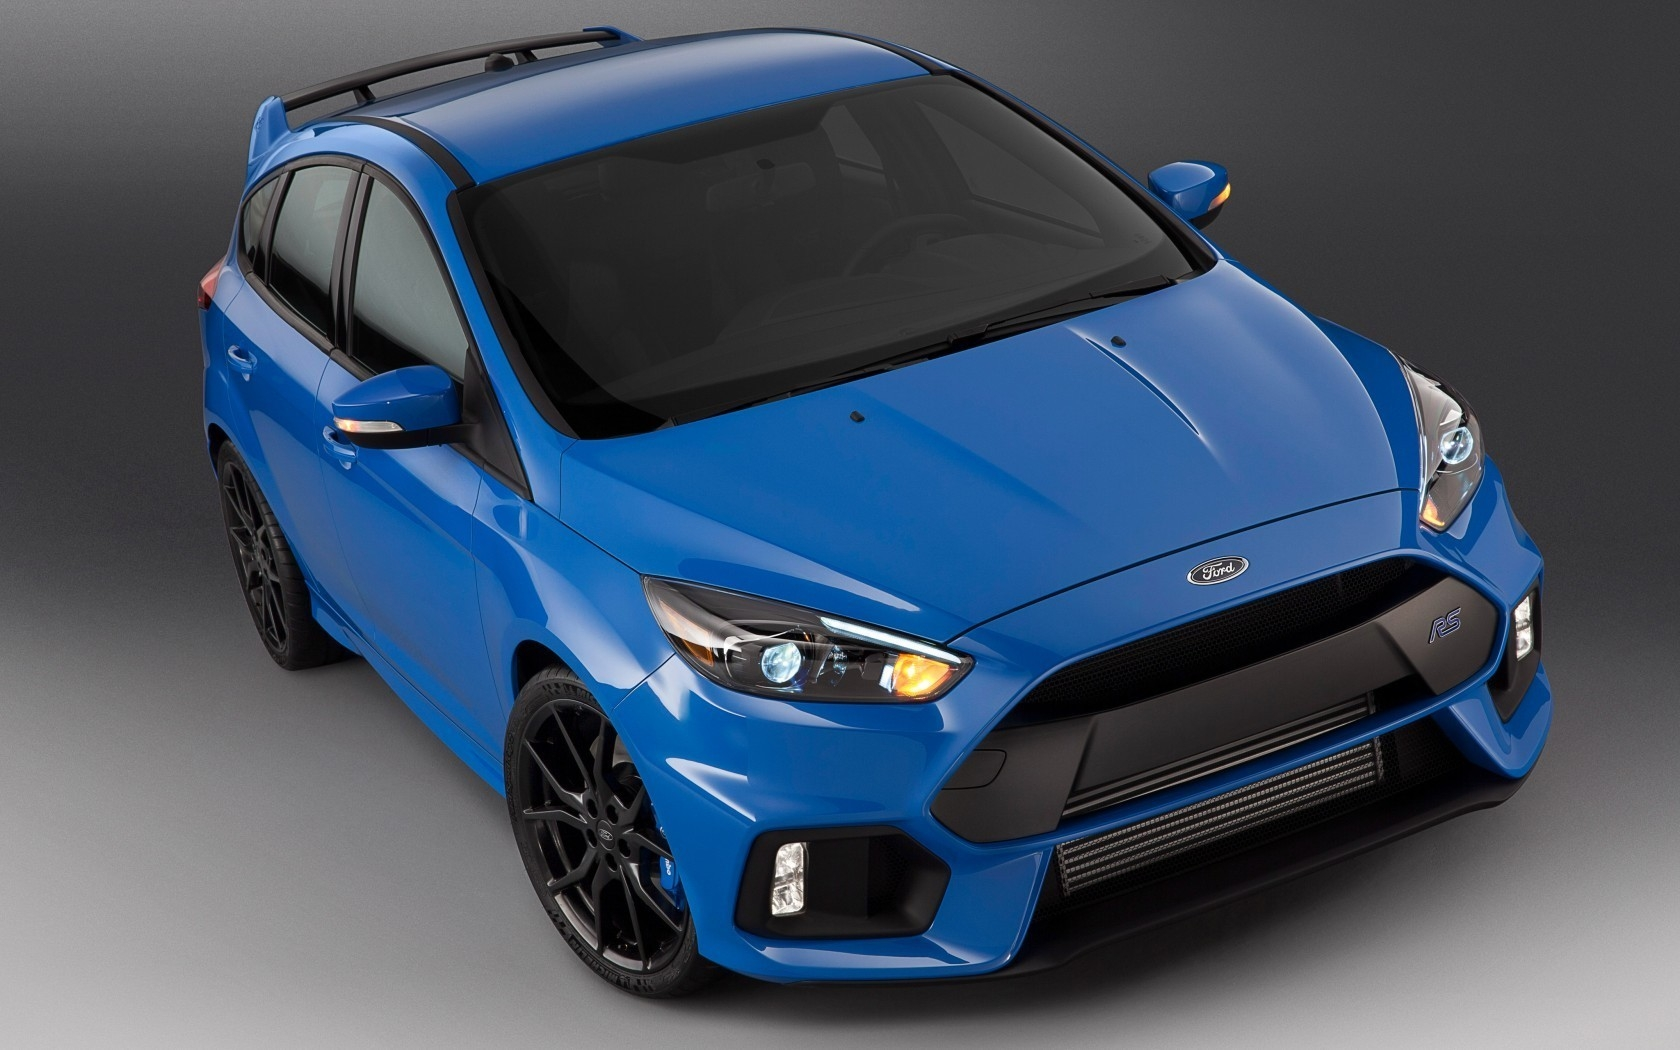 2015 Ford Focus RS  for 1680 x 1050 widescreen resolution